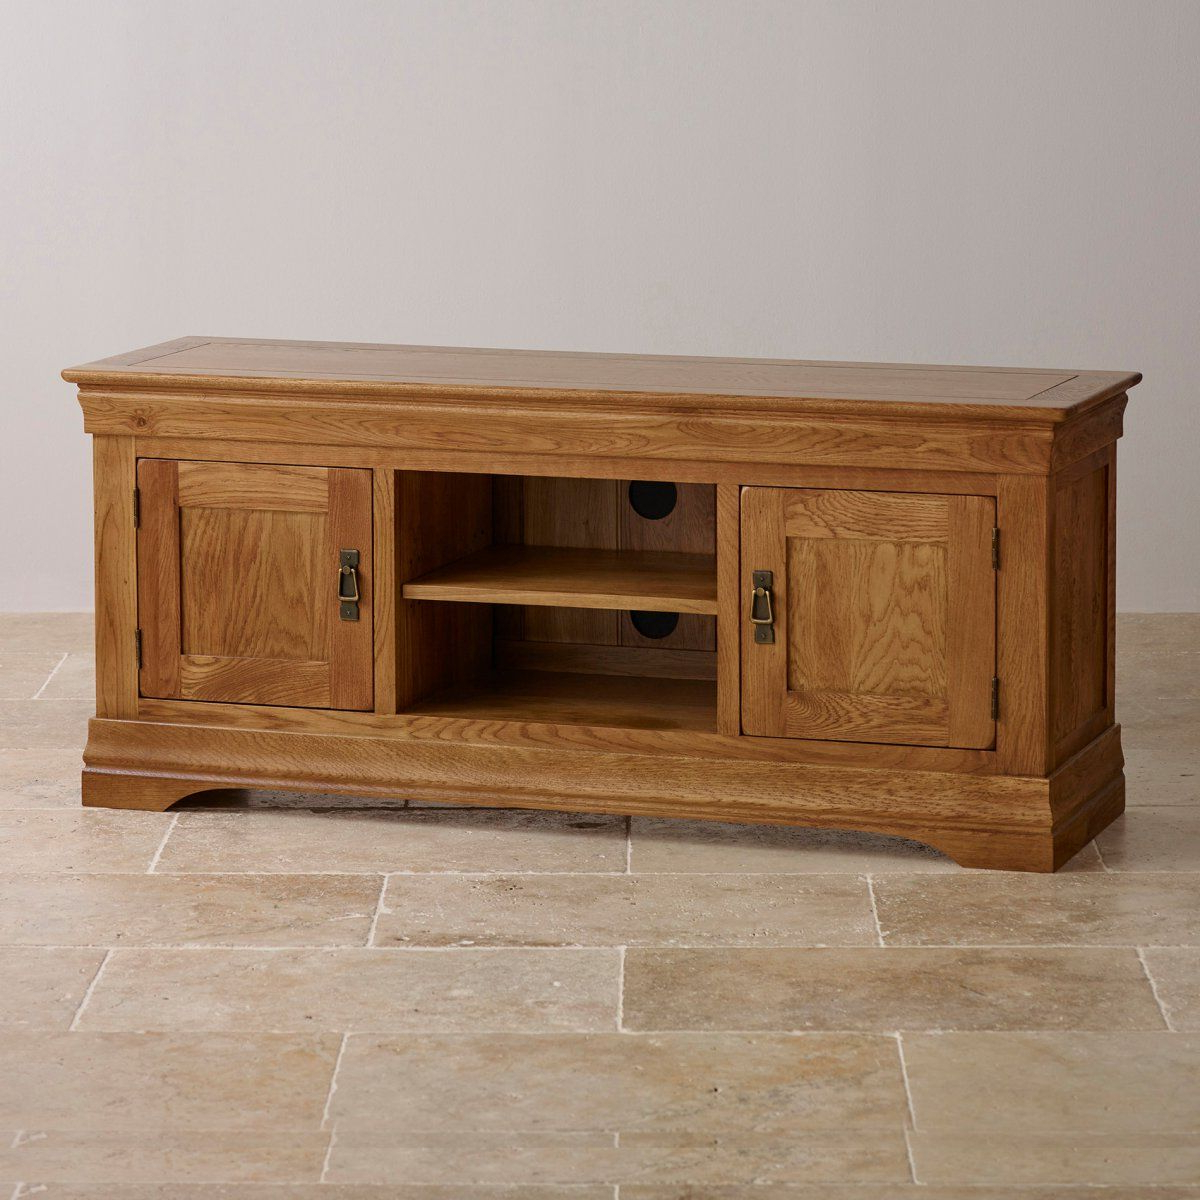 Farmhouse Tv Stand   Farmhouse Tv Unit   Oak Furnitureland In Jackson Wide Tv Stands (View 9 of 20)